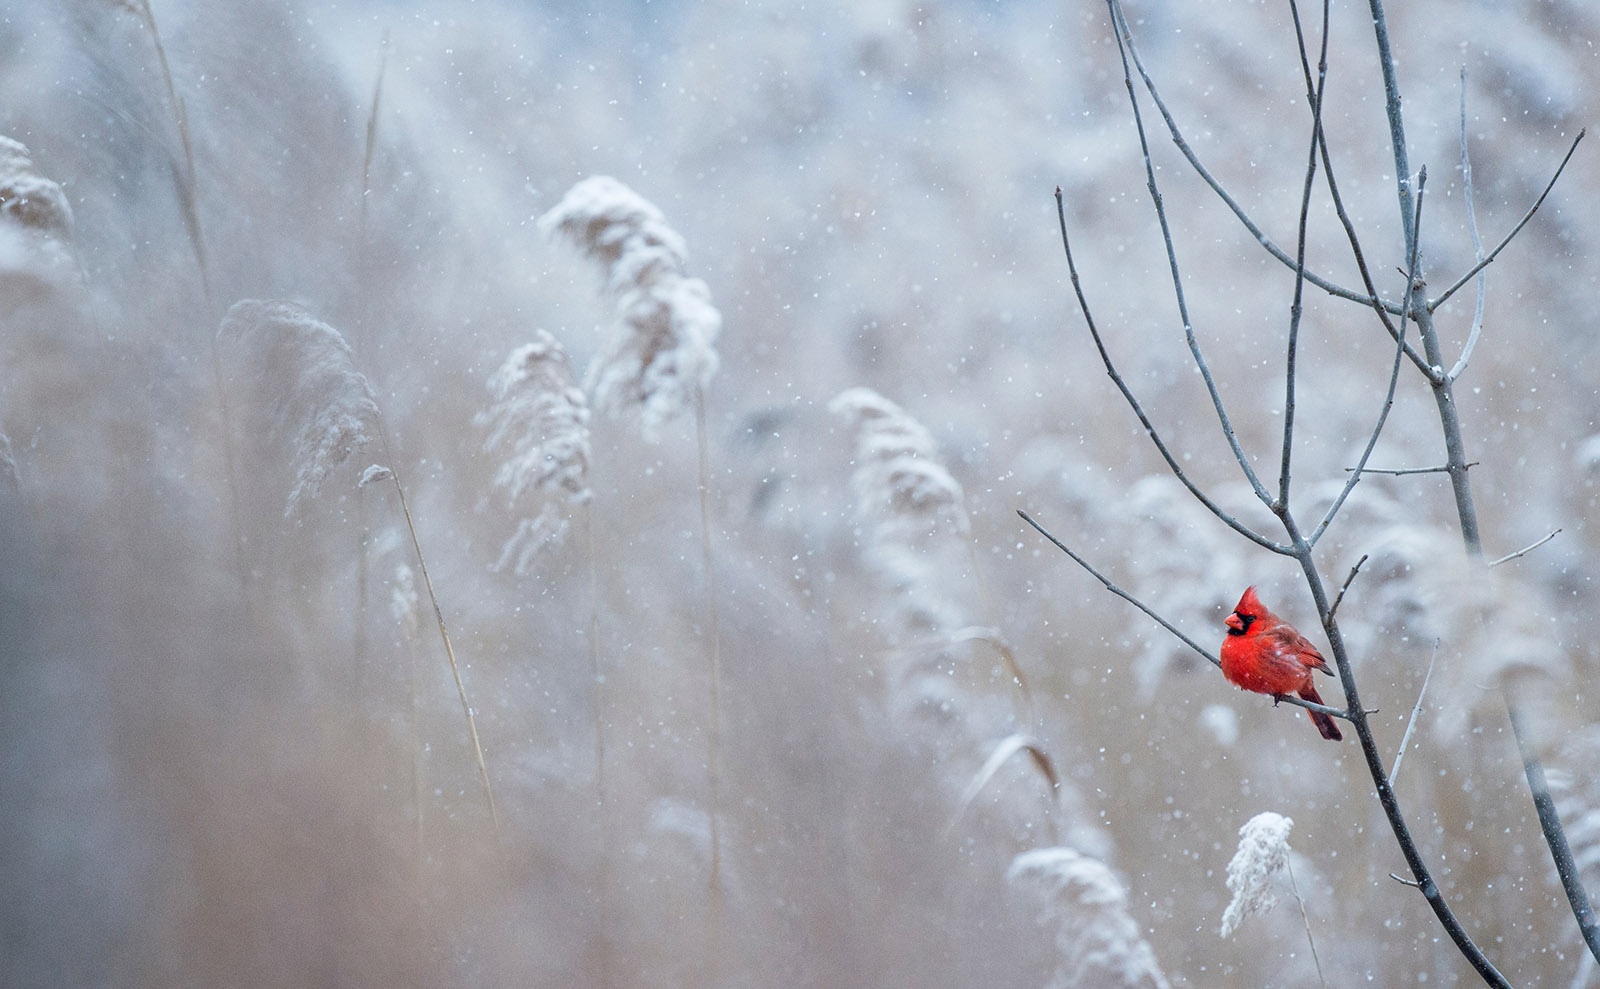 a red cardinal sitting on a snowy tree branch